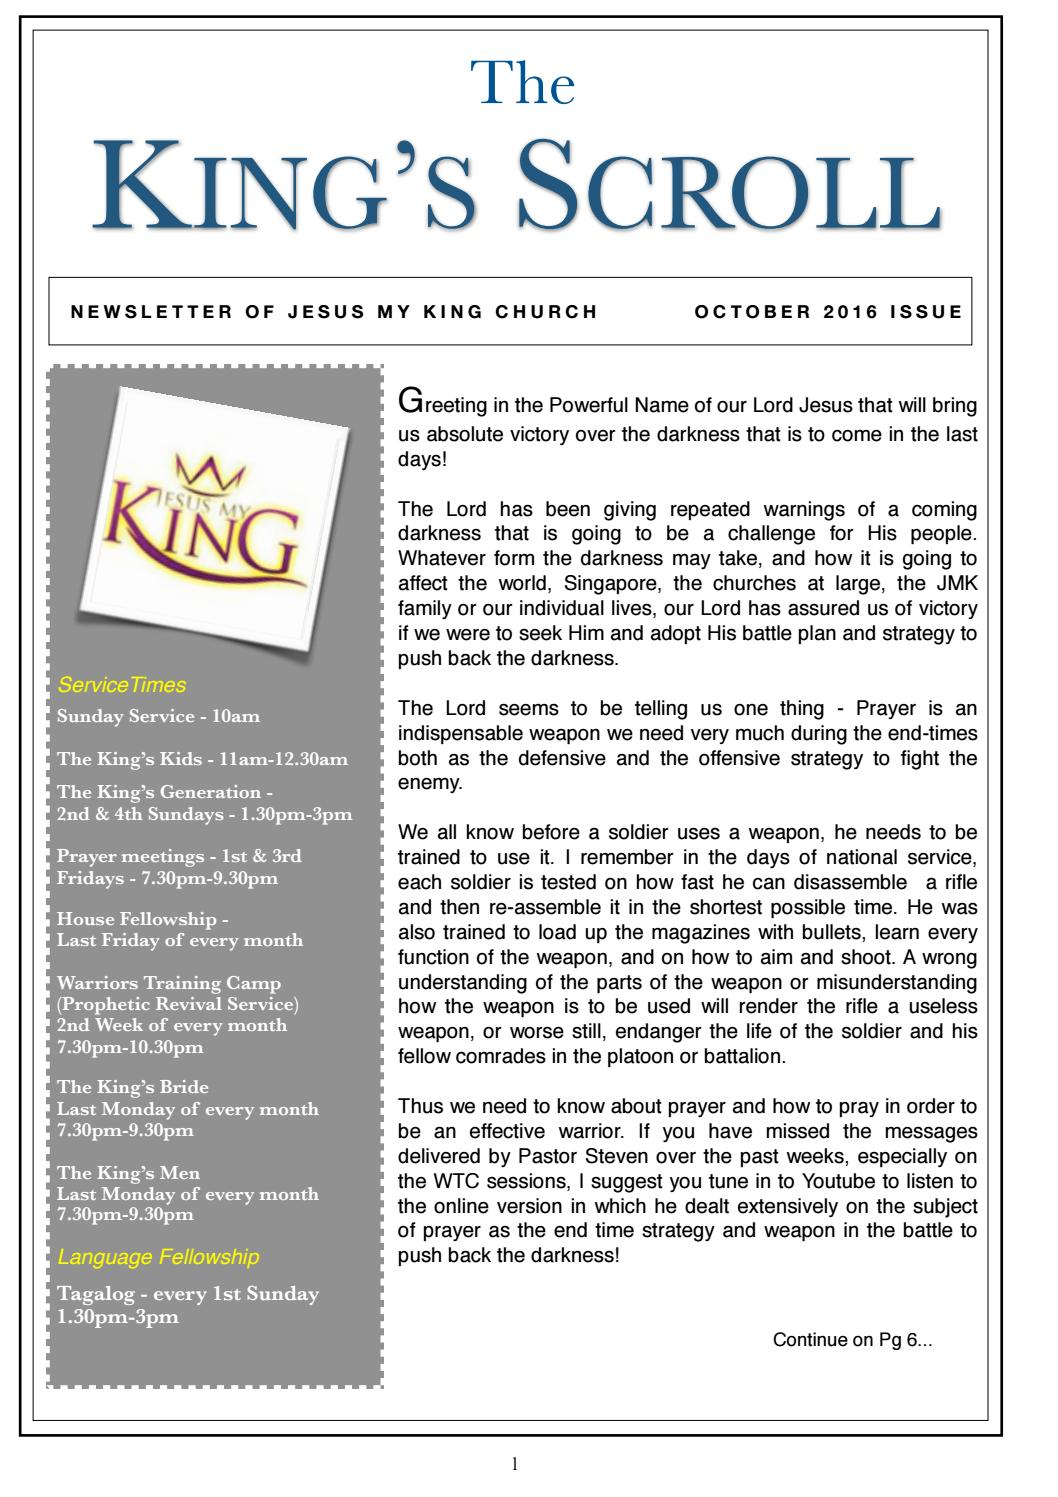 King's Scroll October 2016 Issue by Rivers Media - issuu